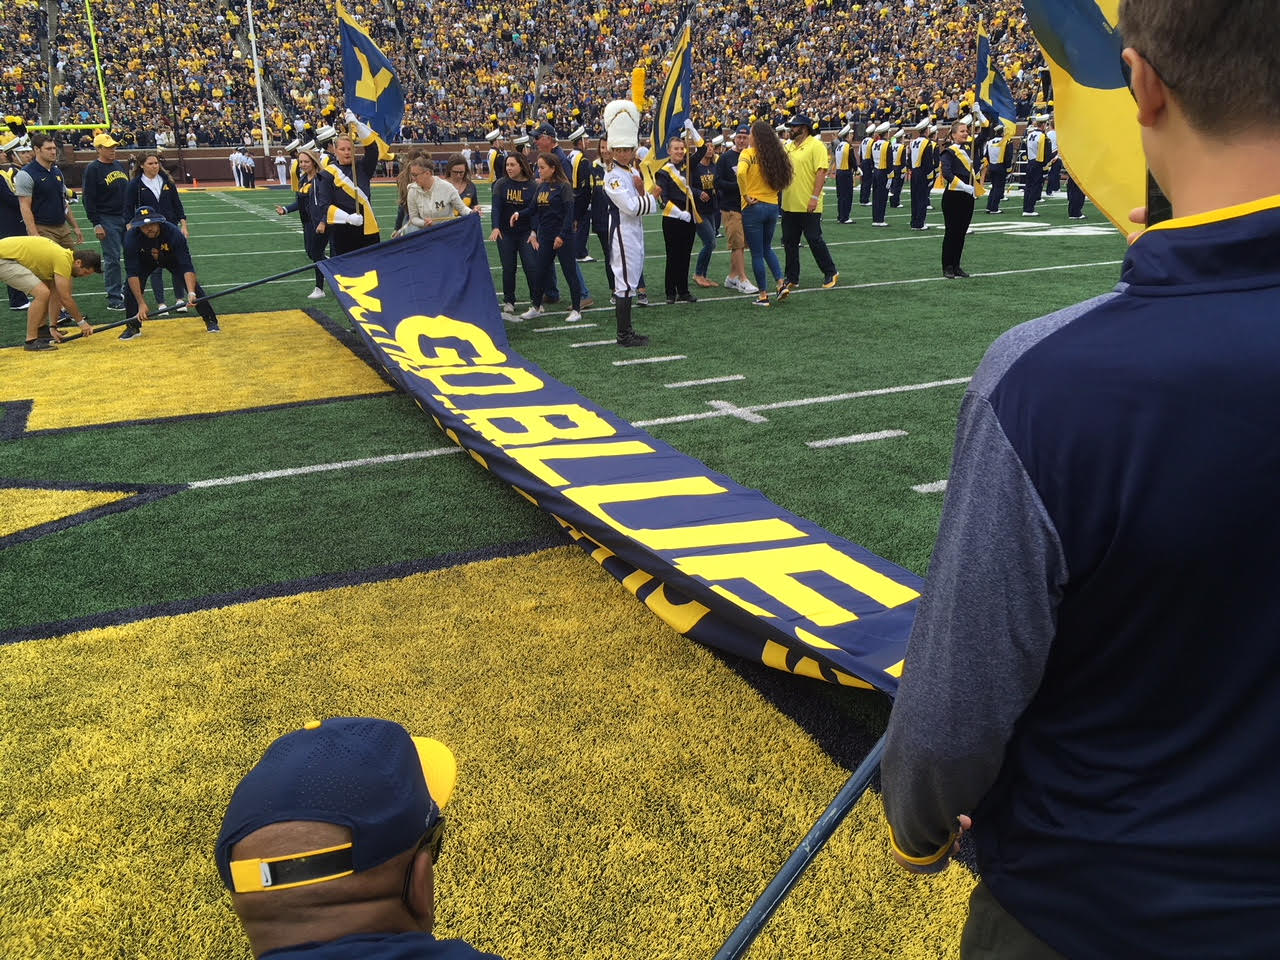 The GO BLUE - M CLUB SUPPORTS YOU banner